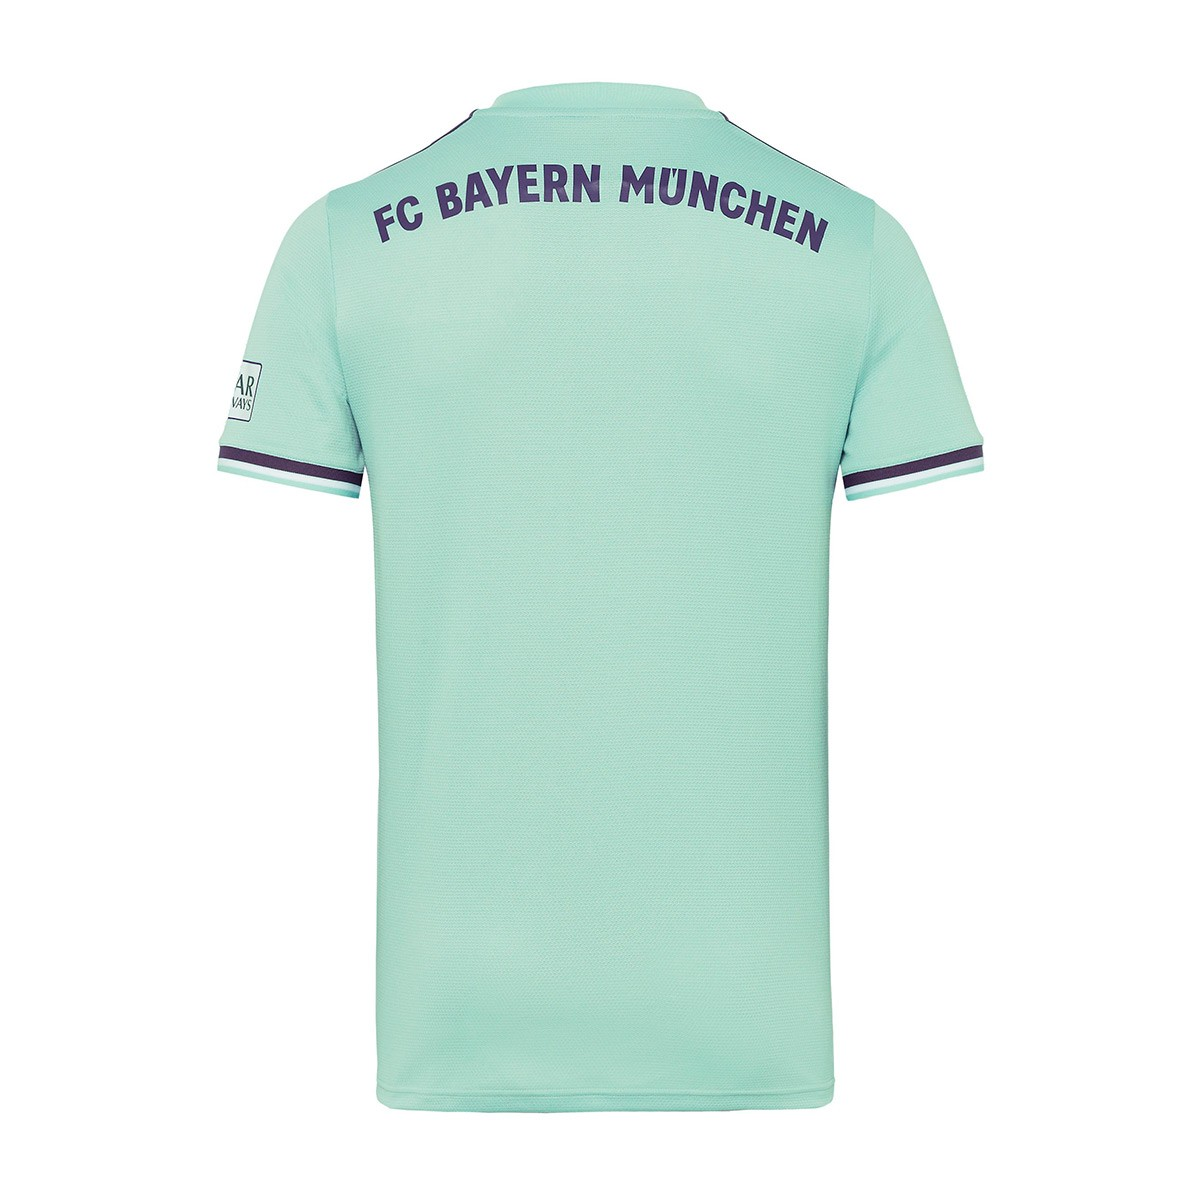 cheaper 0f37f ec82a Camiseta FC Bayern Munich Segunda Equipación 2018-2019 Green-Trace  purple-White